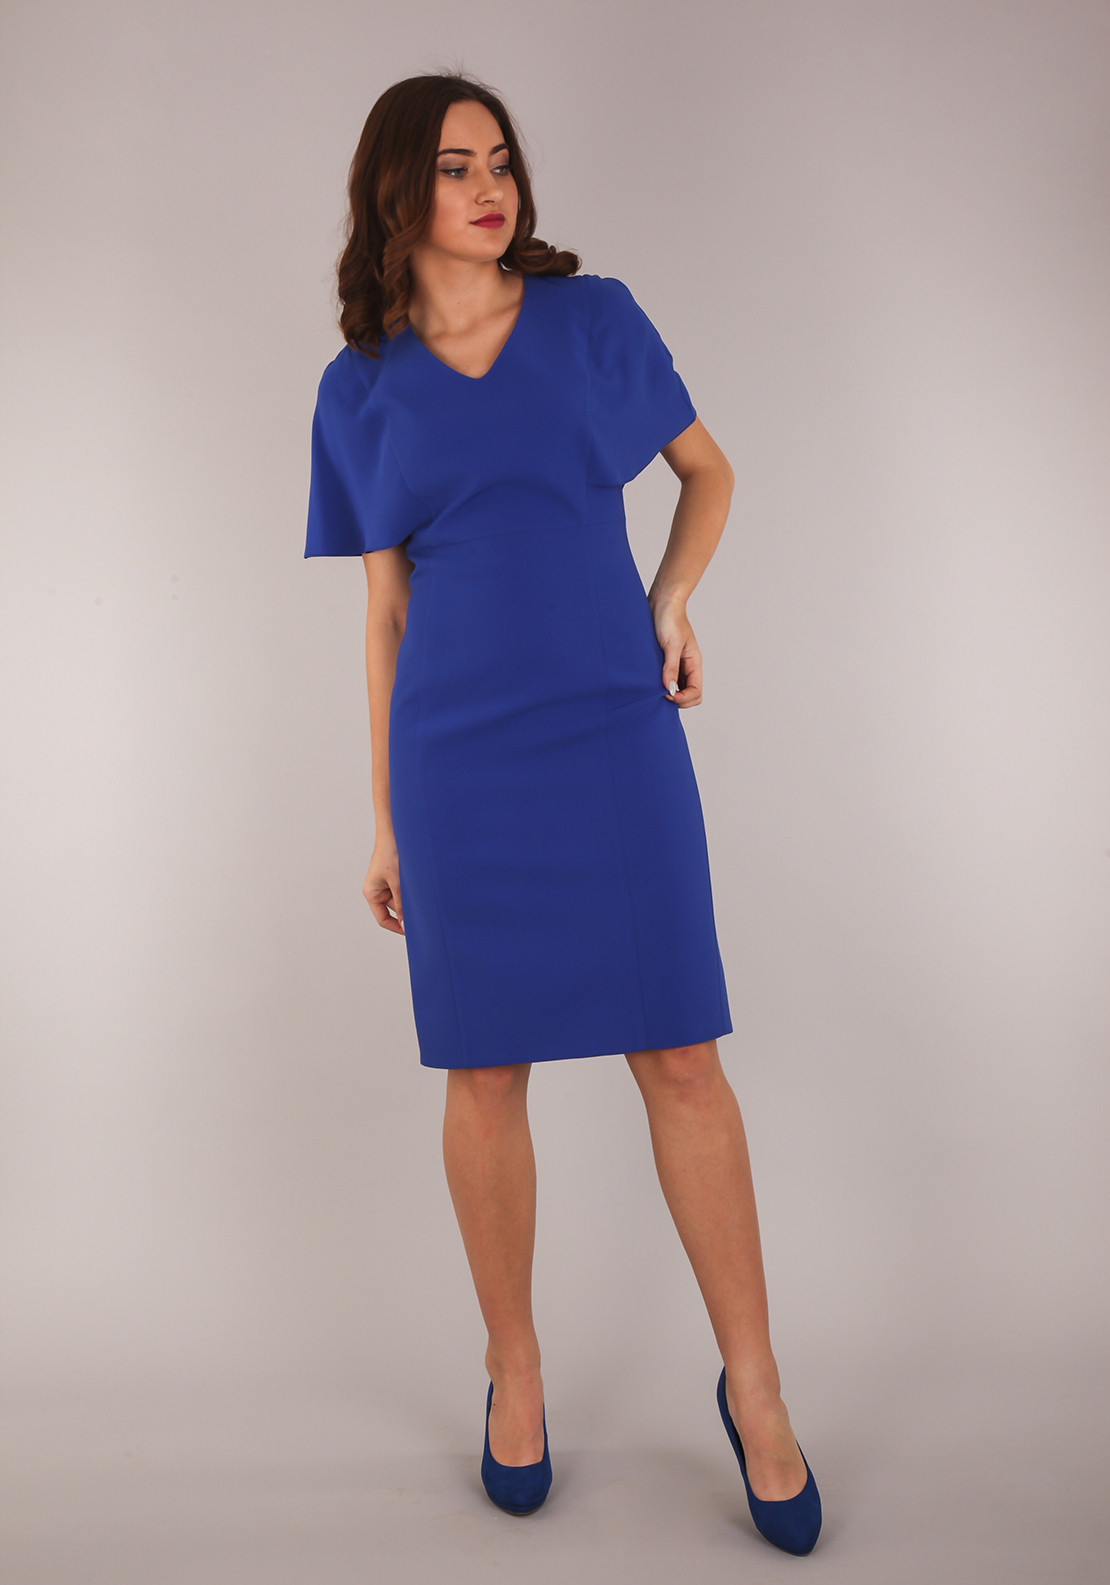 Ella Boo Wide Sleeve Pencil Dress, Royal Blue